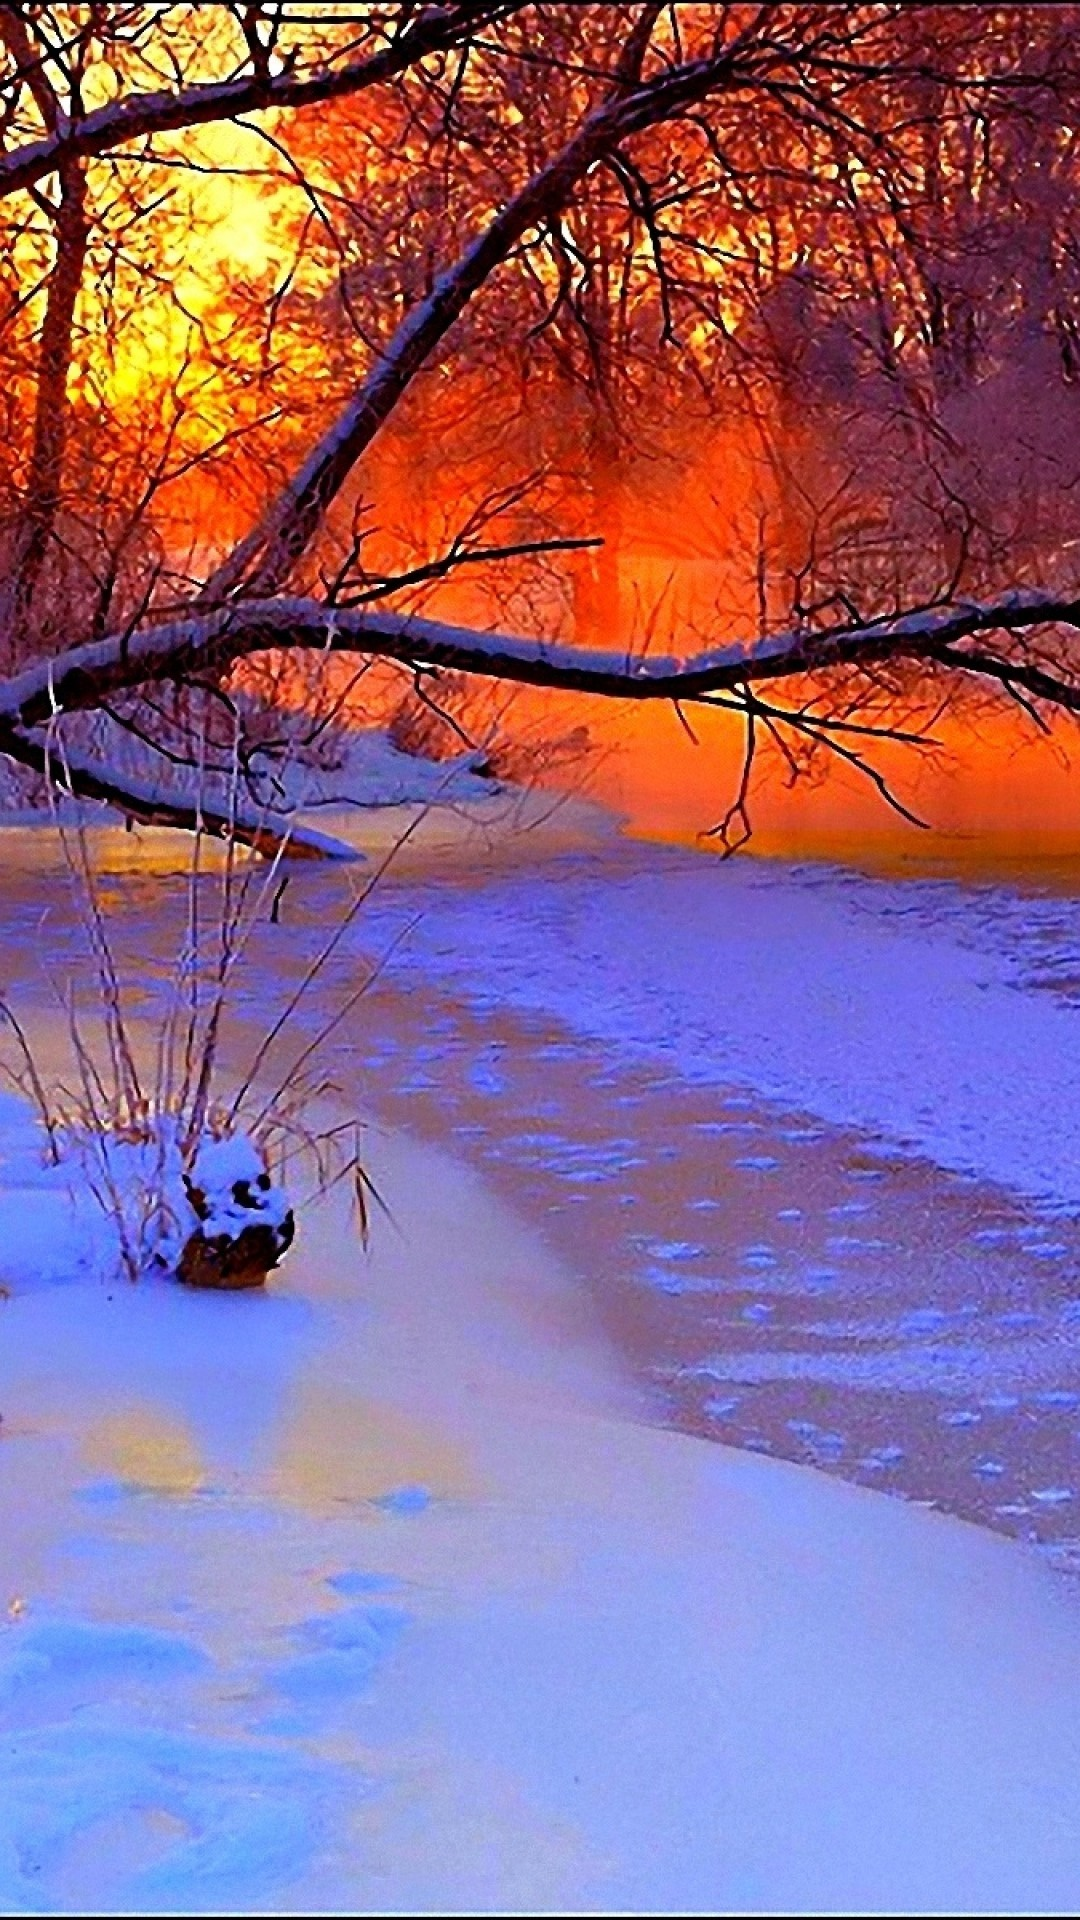 River, trees, sunset, winter wonderland, the whole package all together.